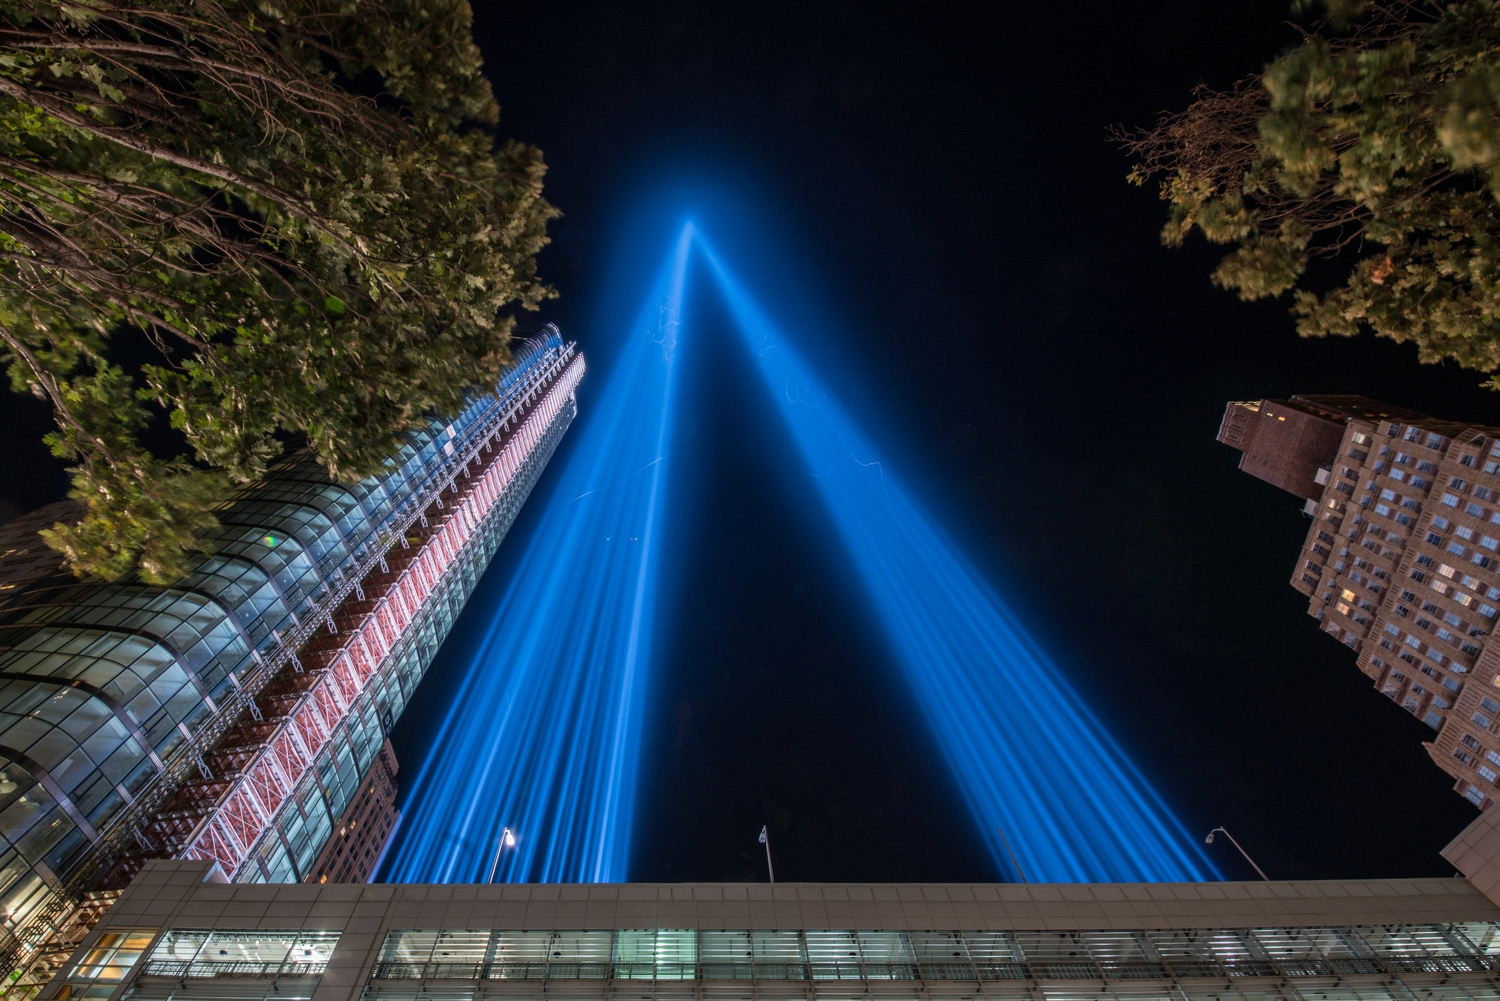 Up Close | The Tribute in Light, as viewed from the base of the memorial.